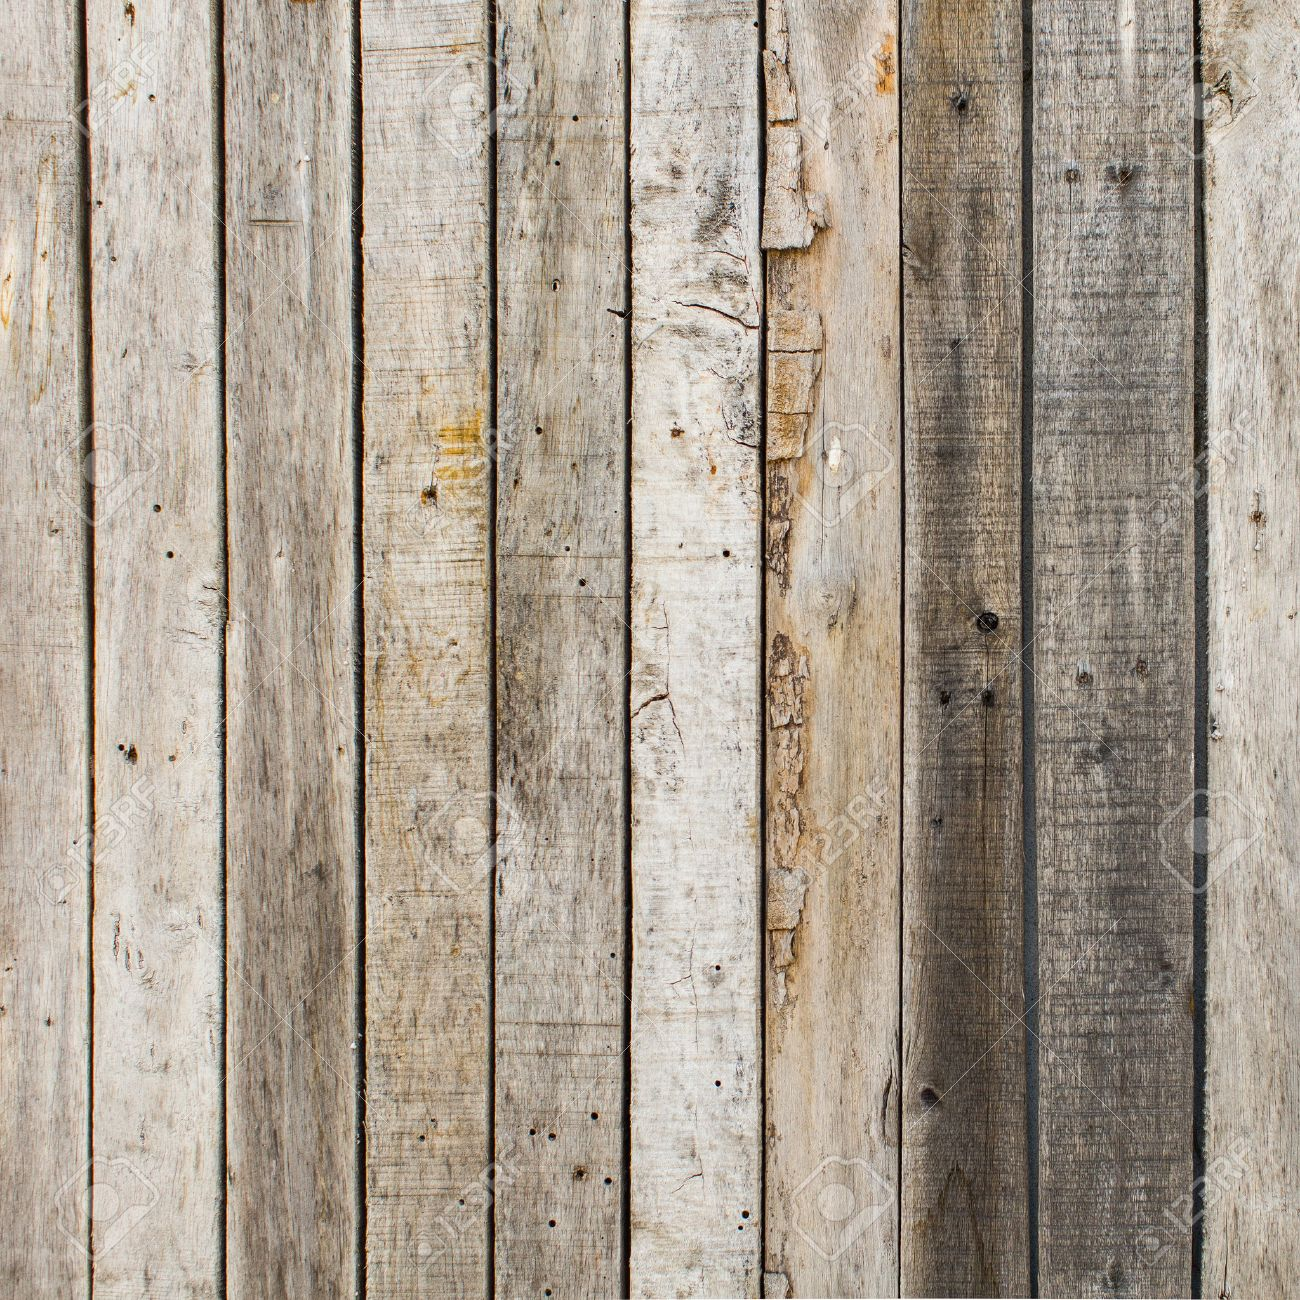 Barn Wood Background barn wood stock photos. royalty free barn wood images and pictures